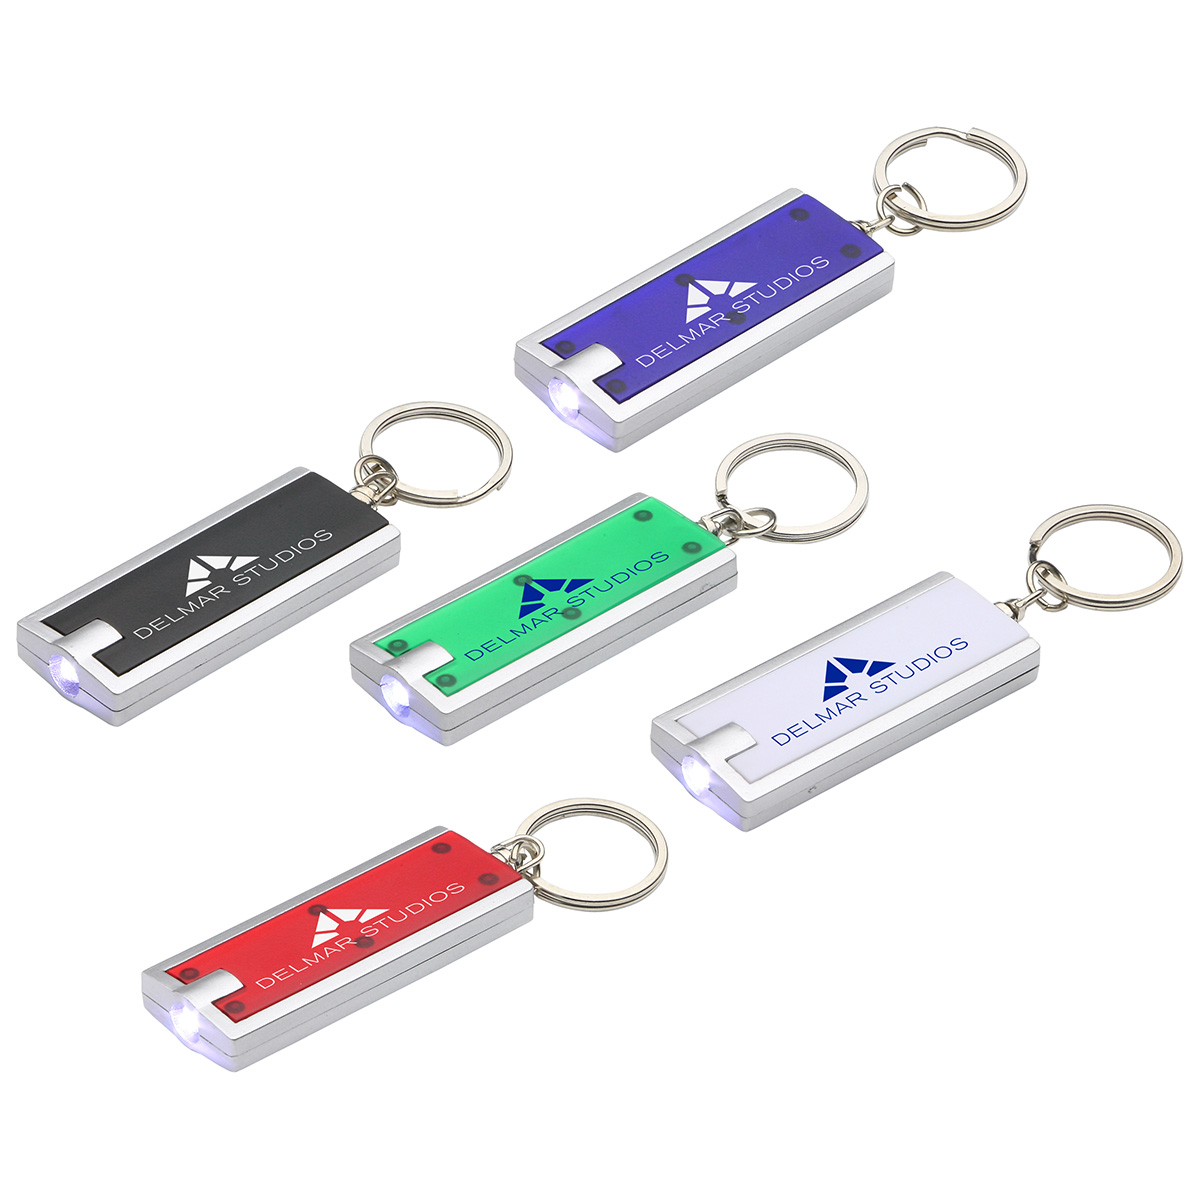 Simple Touch LED Keychain, WLT-ST11 - 1 Colour Imprint